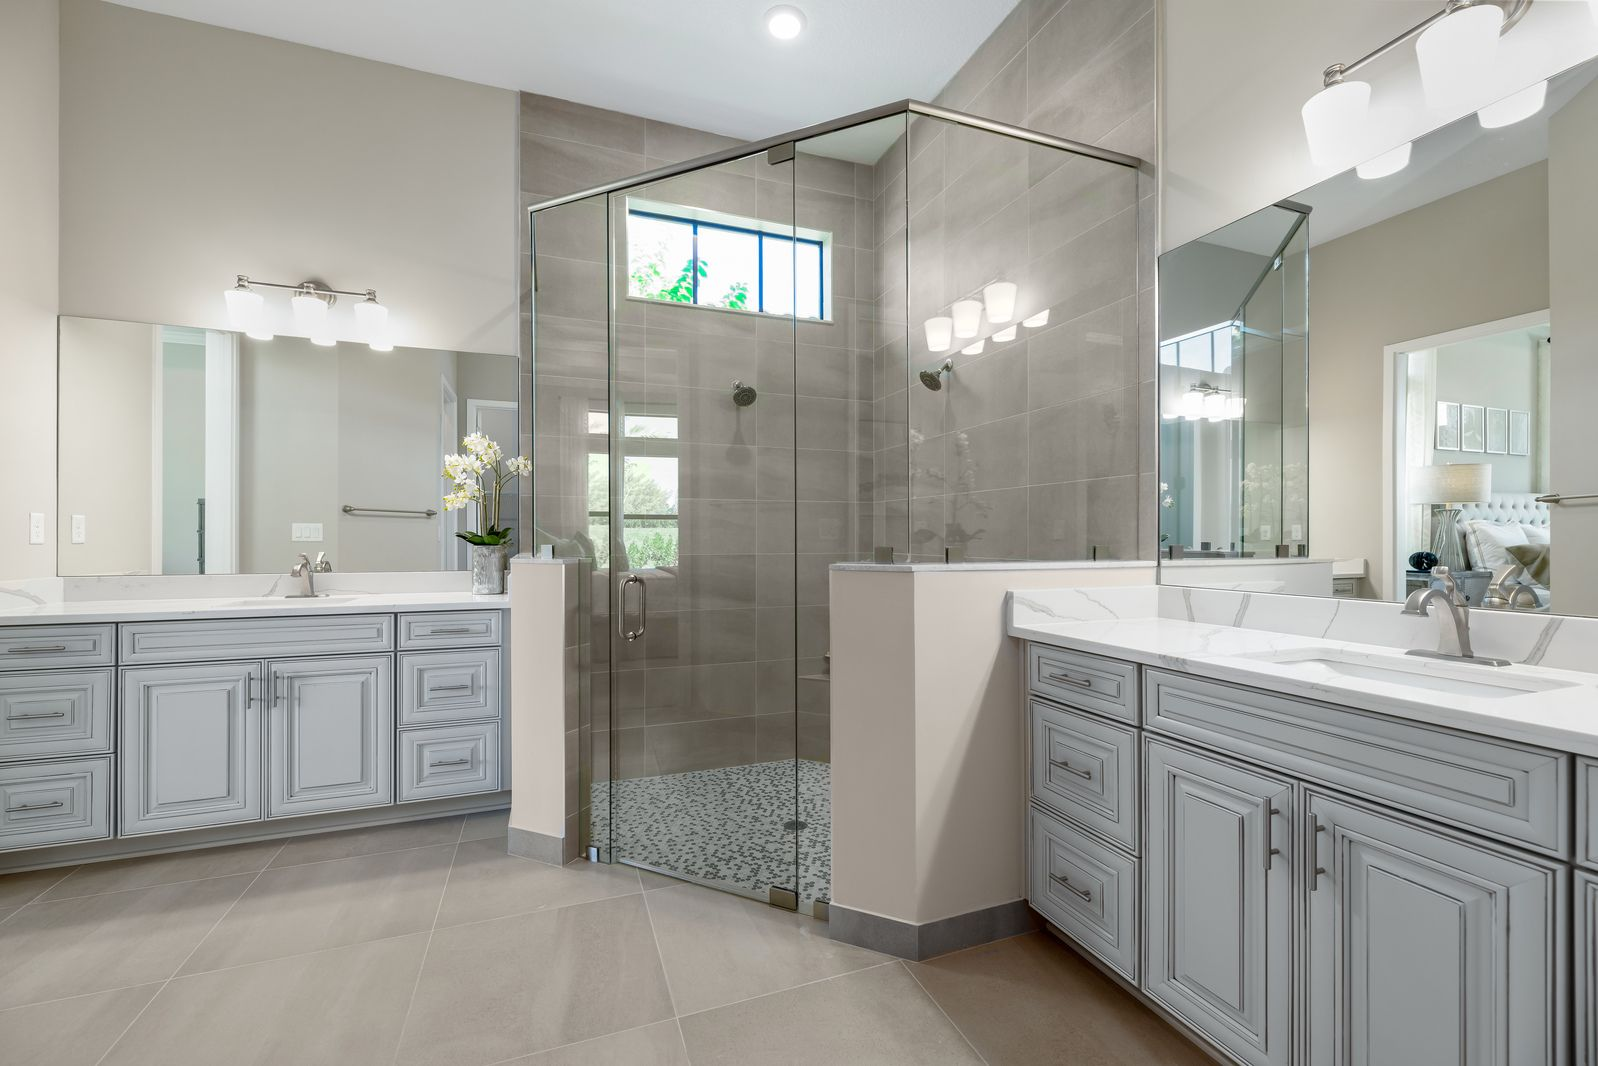 Bathroom featured in the Antigua Grande- The Whitehall Collection By Ryan Homes